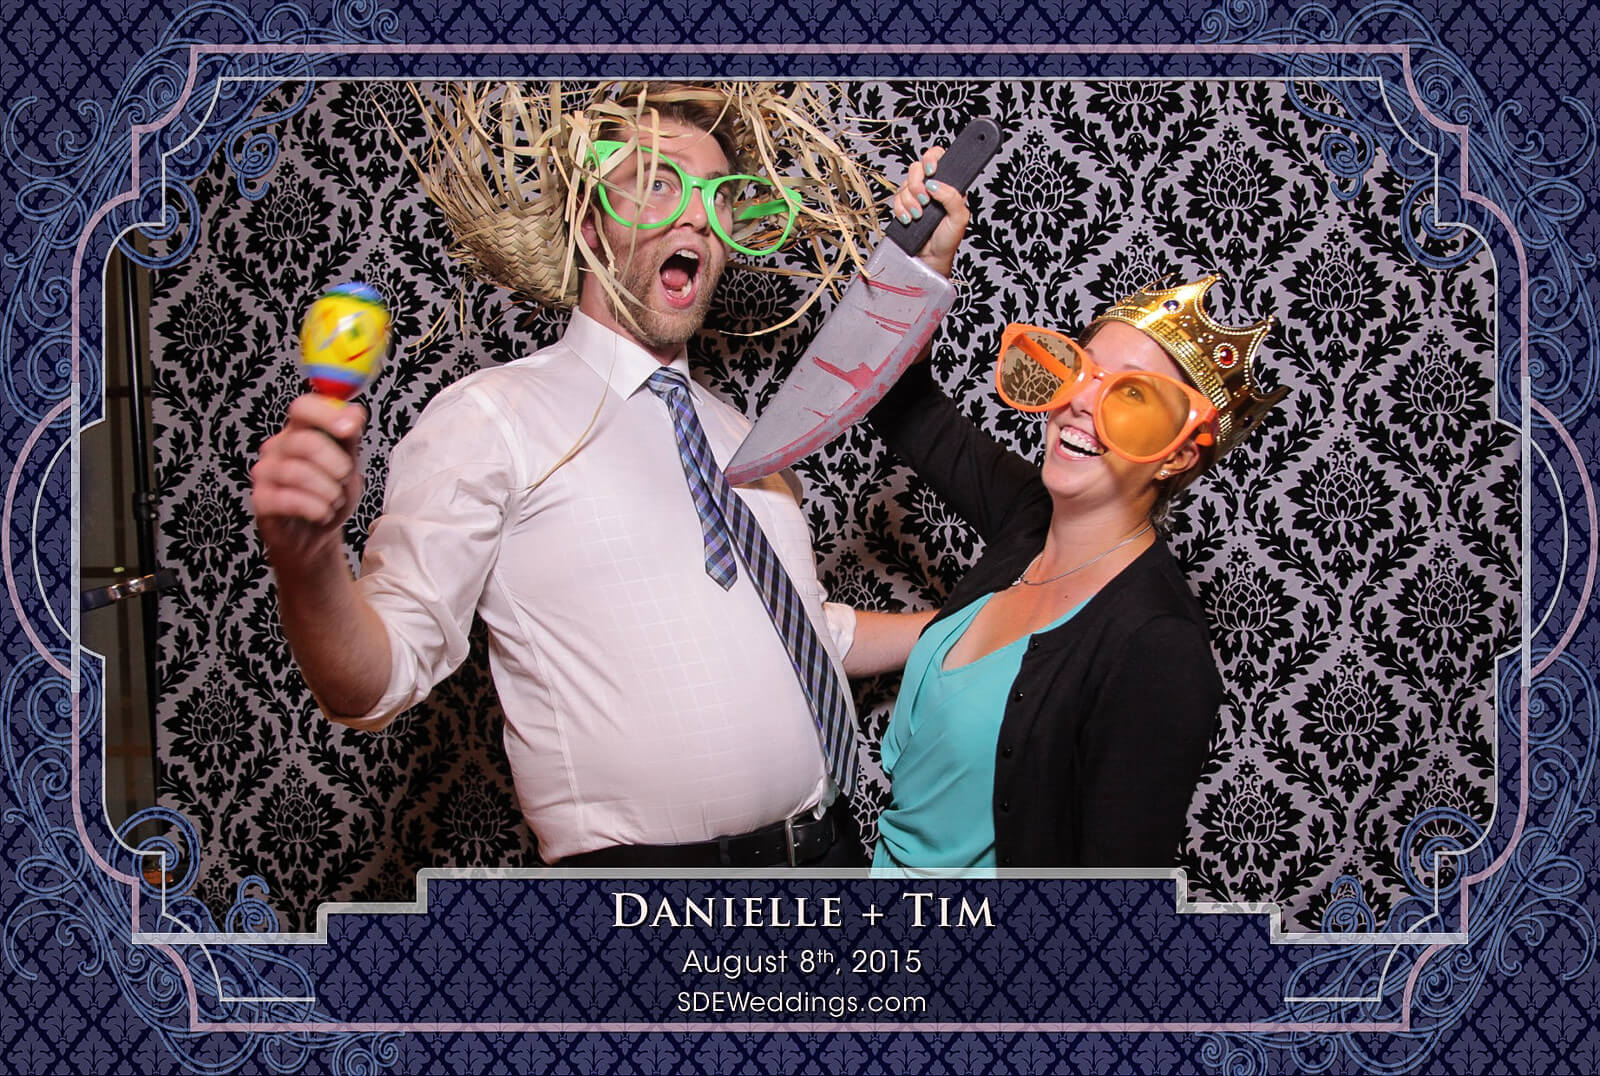 Toronto Old Mill Inn Wedding Photo Booth Rental 9